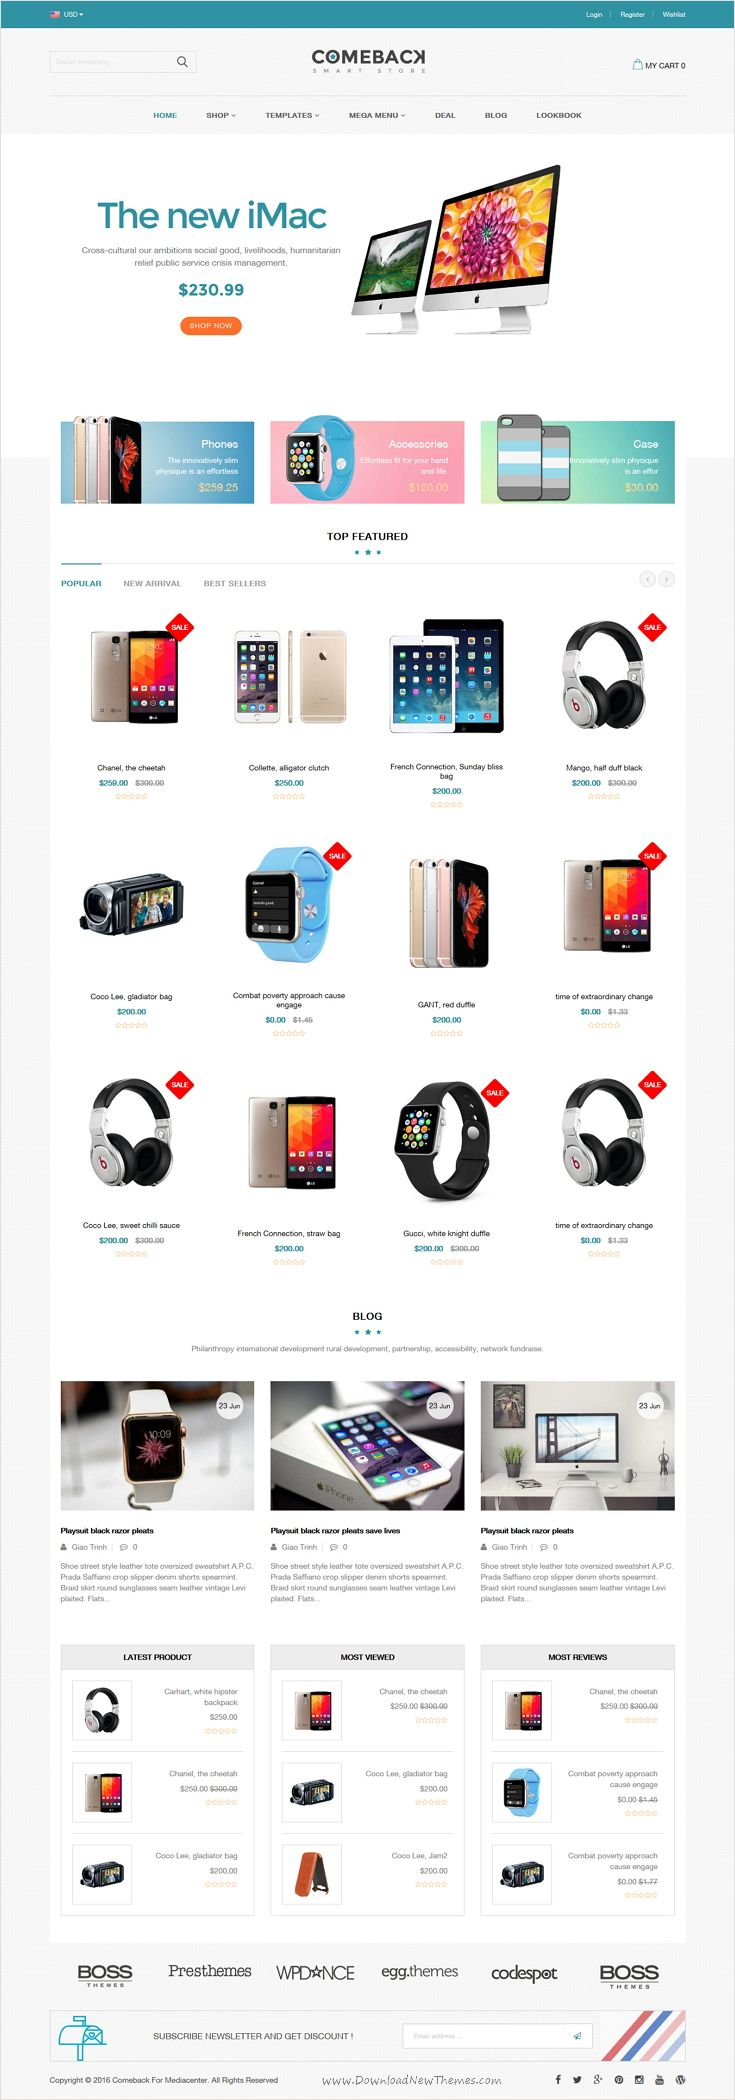 Comeback is a advanced #Shopify Theme for stunning #electronics #store eCommerce website with Drag and Drop Page Builders and 10+ multipurpose homepage layouts download now➩ https://themeforest.net/item/comeback-advanced-shopify-theme-option-drag-and-drop-page-builders/17729663?ref=Datasata